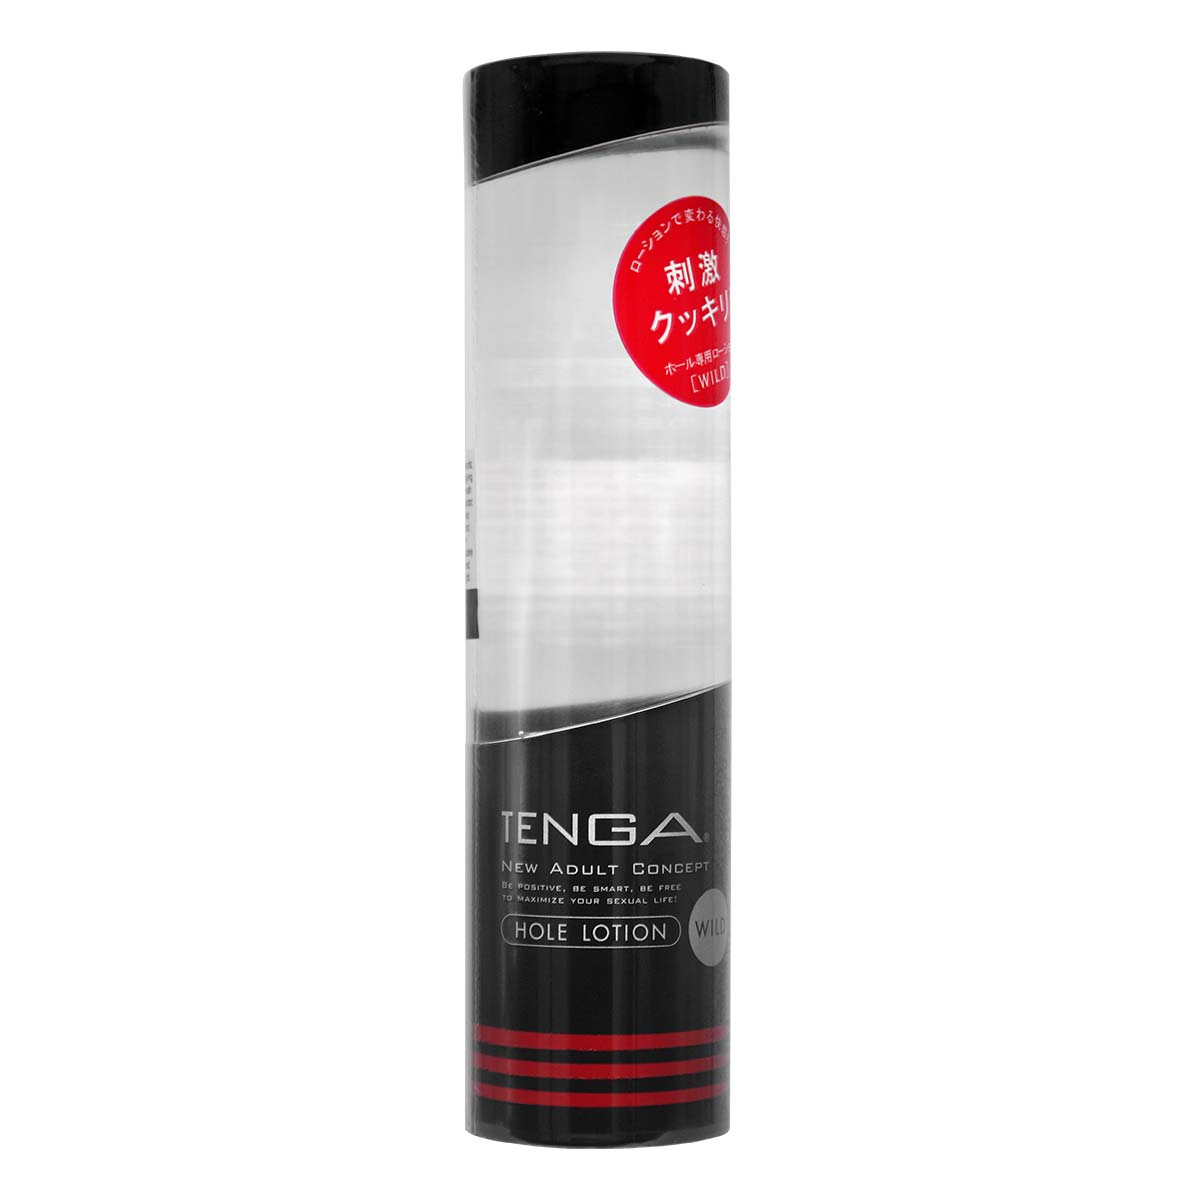 TENGA Hole Lotion [WILD Black] 170ml Water-based Lubricant